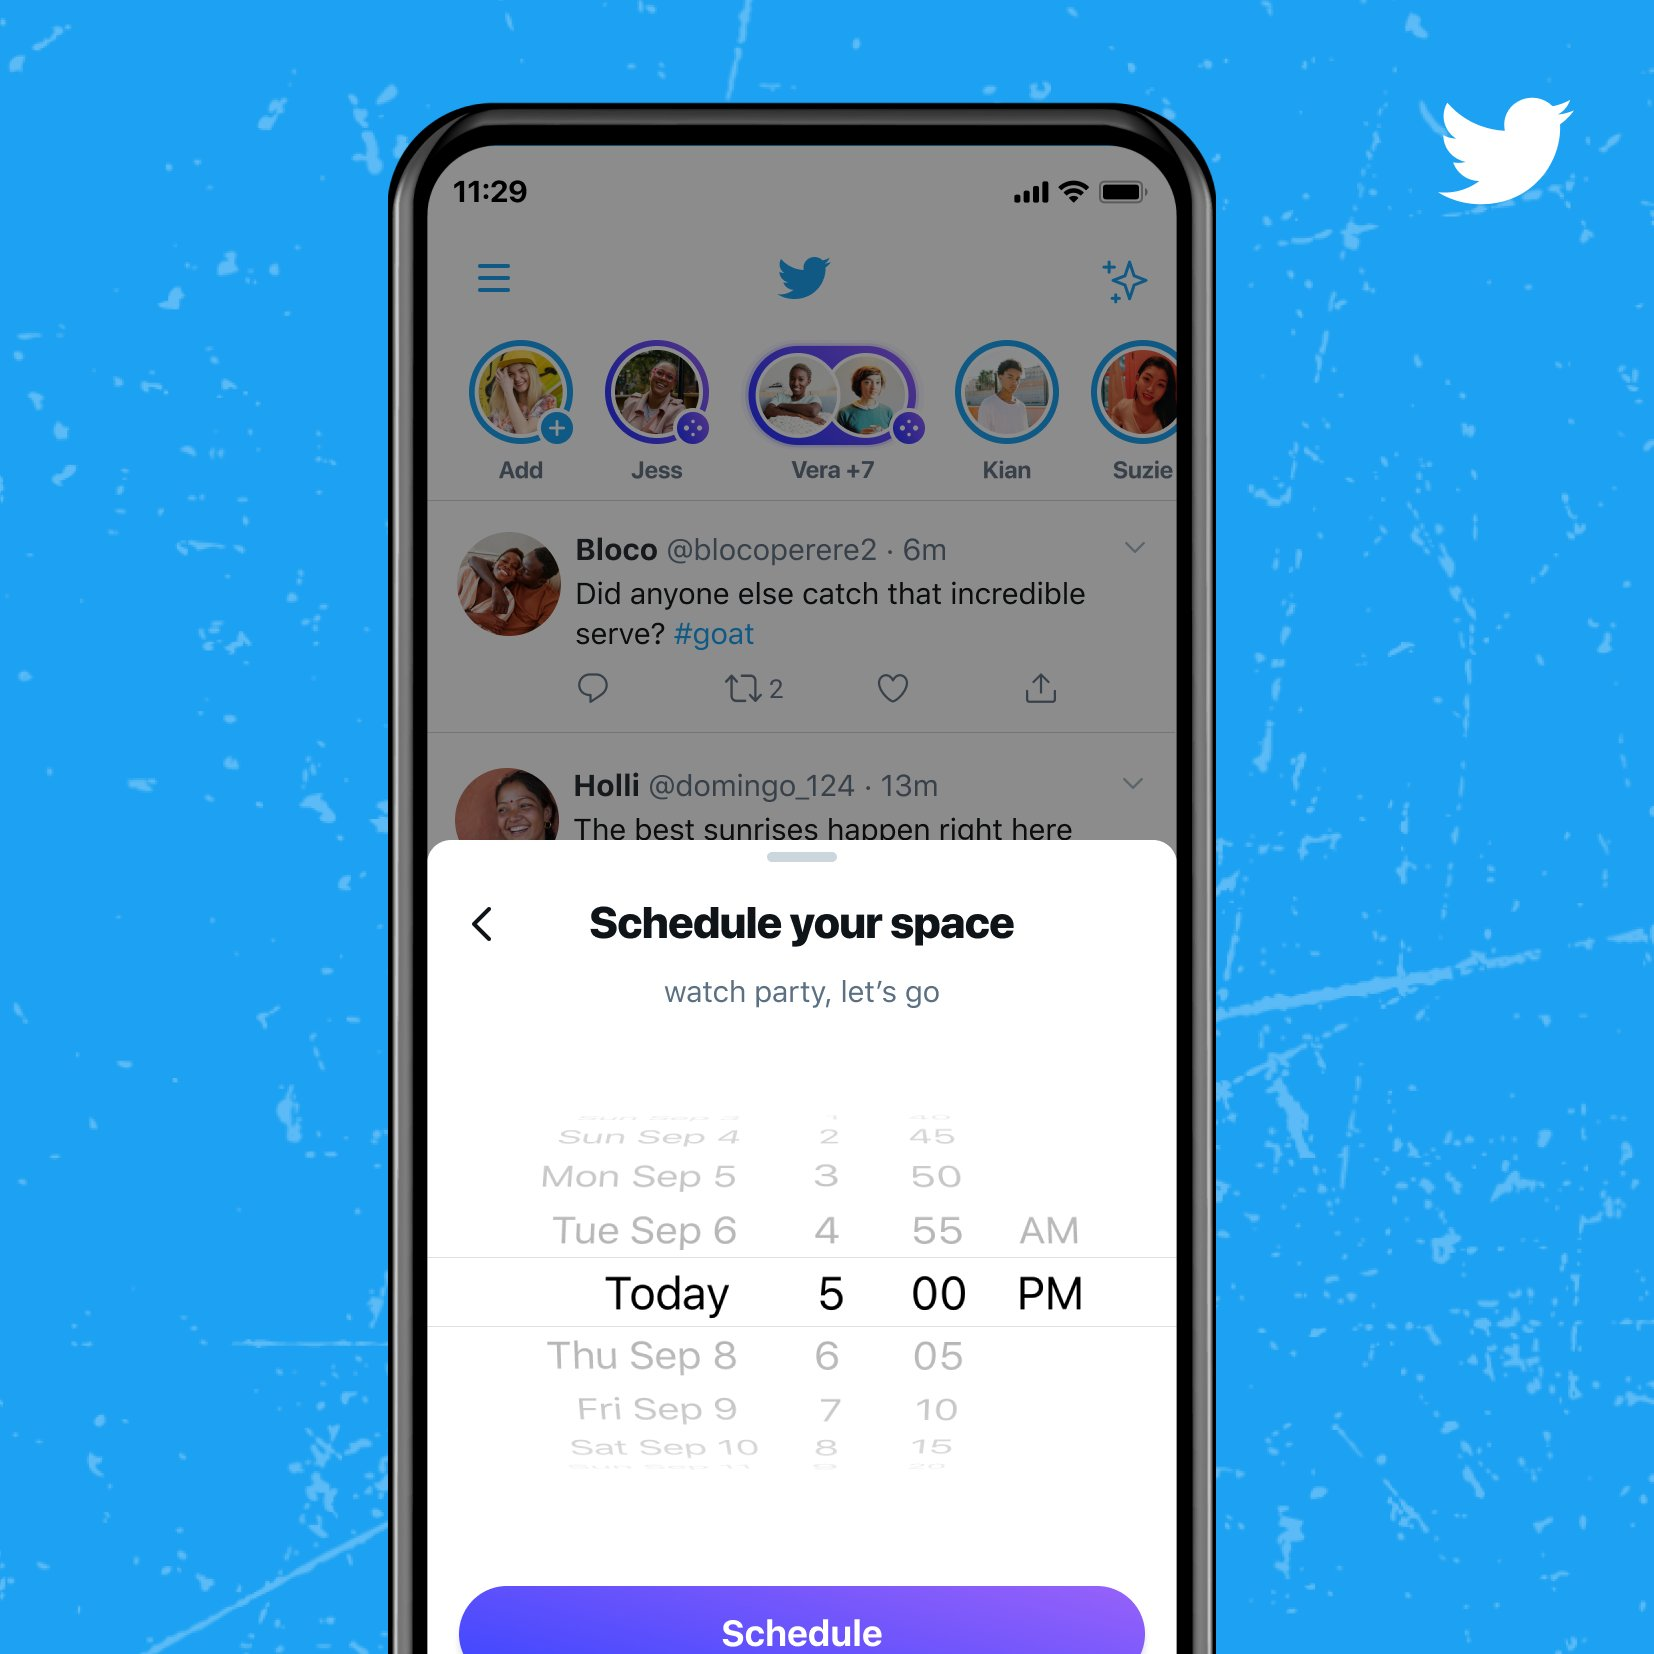 You have the option to schedule your Twitter Space for a specific date and time.